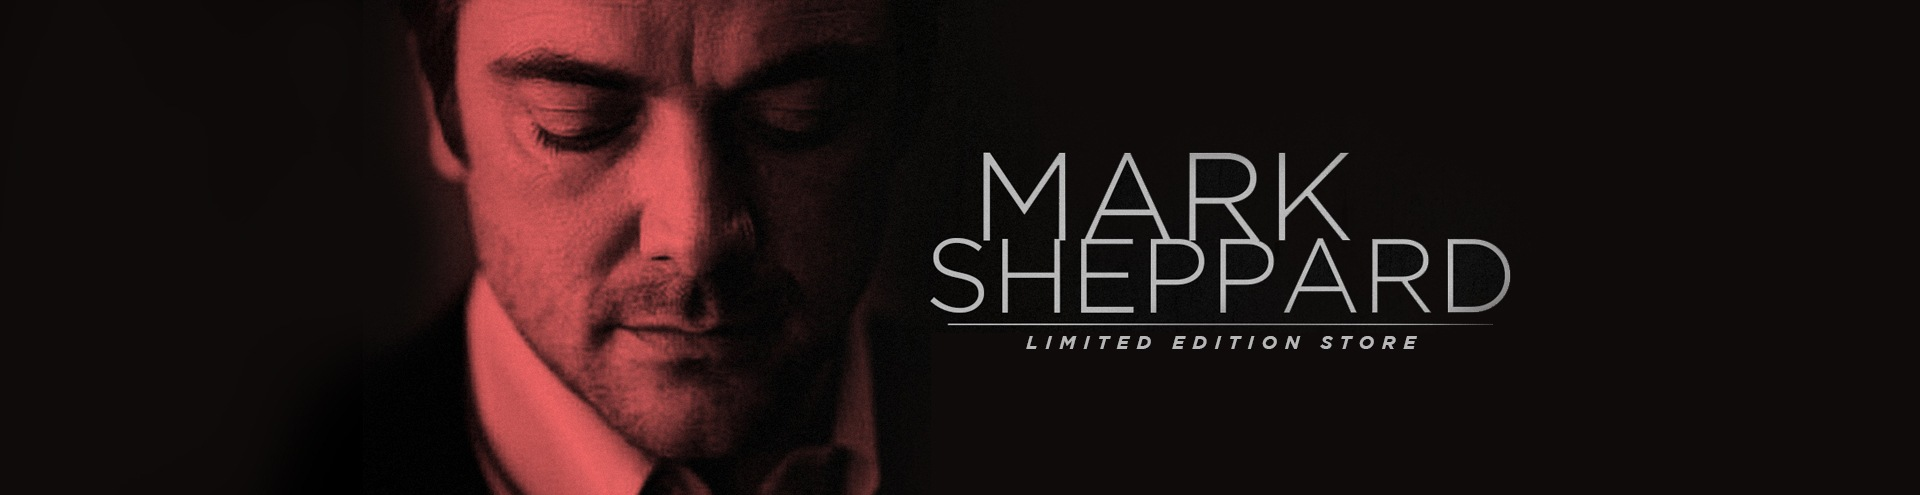 Mark Sheppard Official Store Store